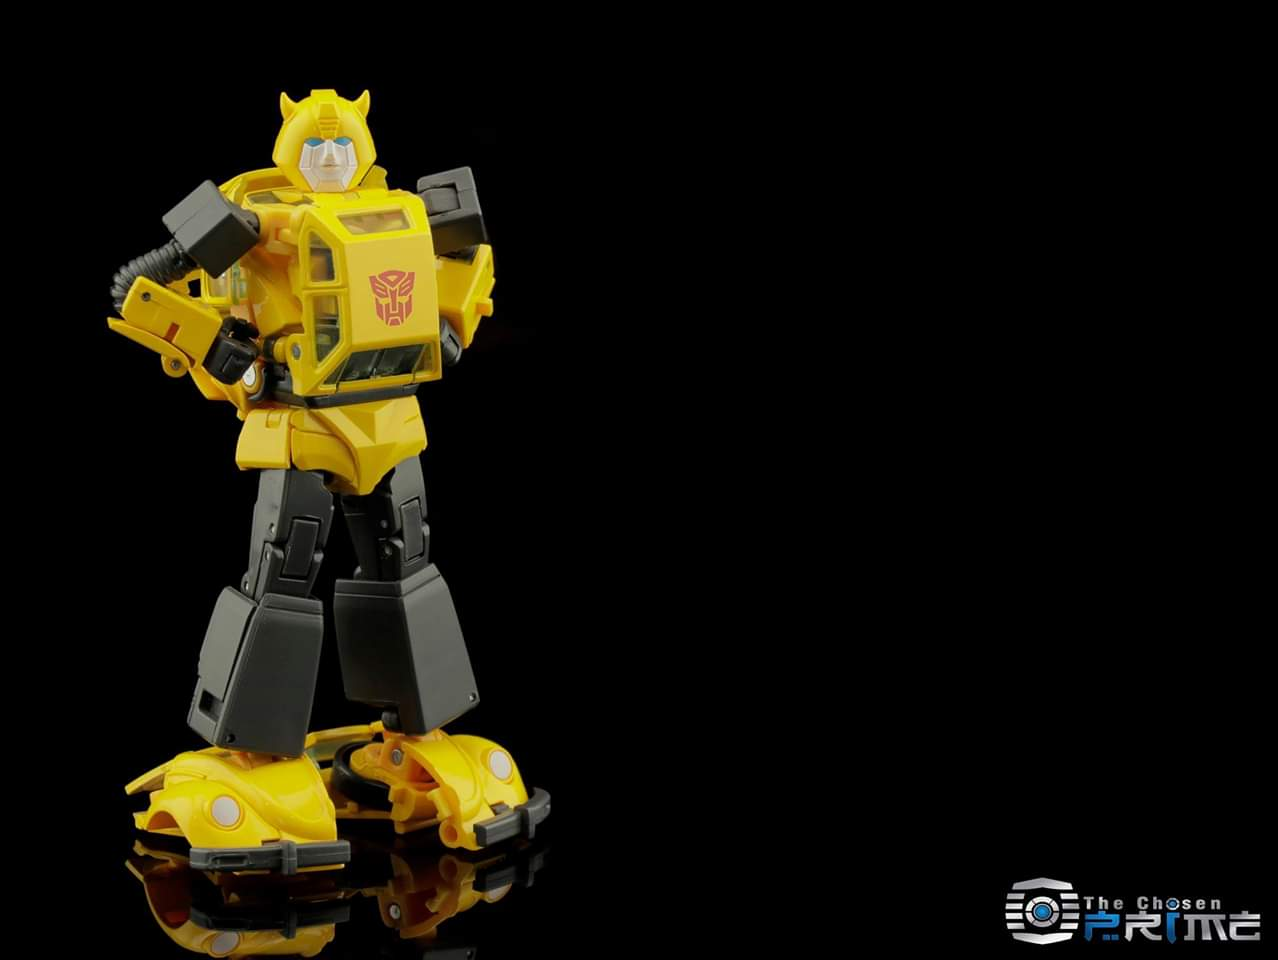 [Masterpiece] MP-45 Bumblebee/Bourdon v2.0 - Page 2 JbFoeDX6_o